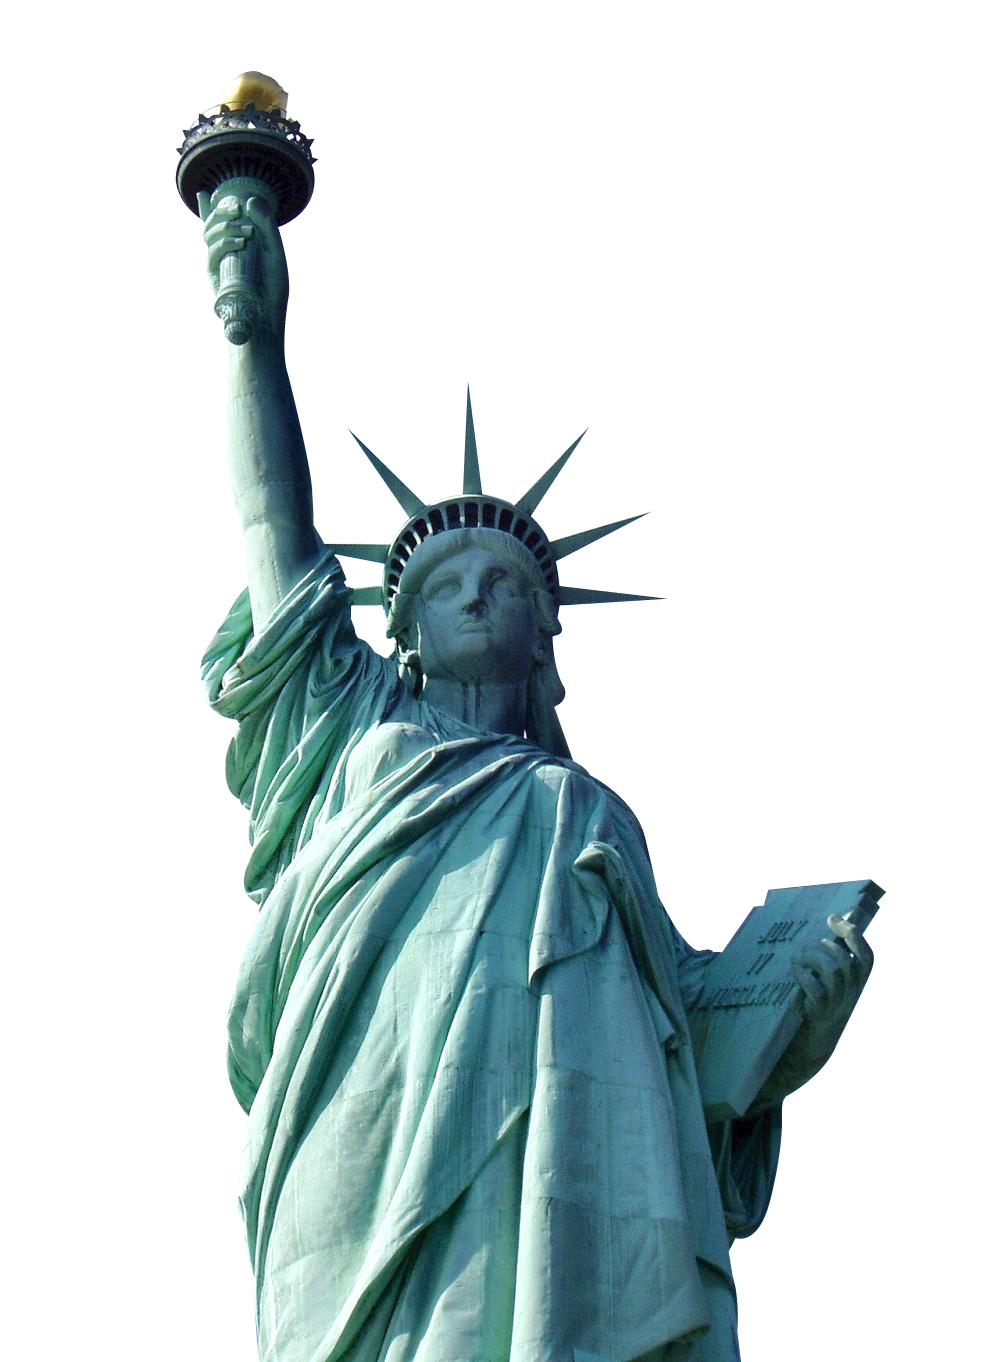 Pics Of The Statue Of Liberty